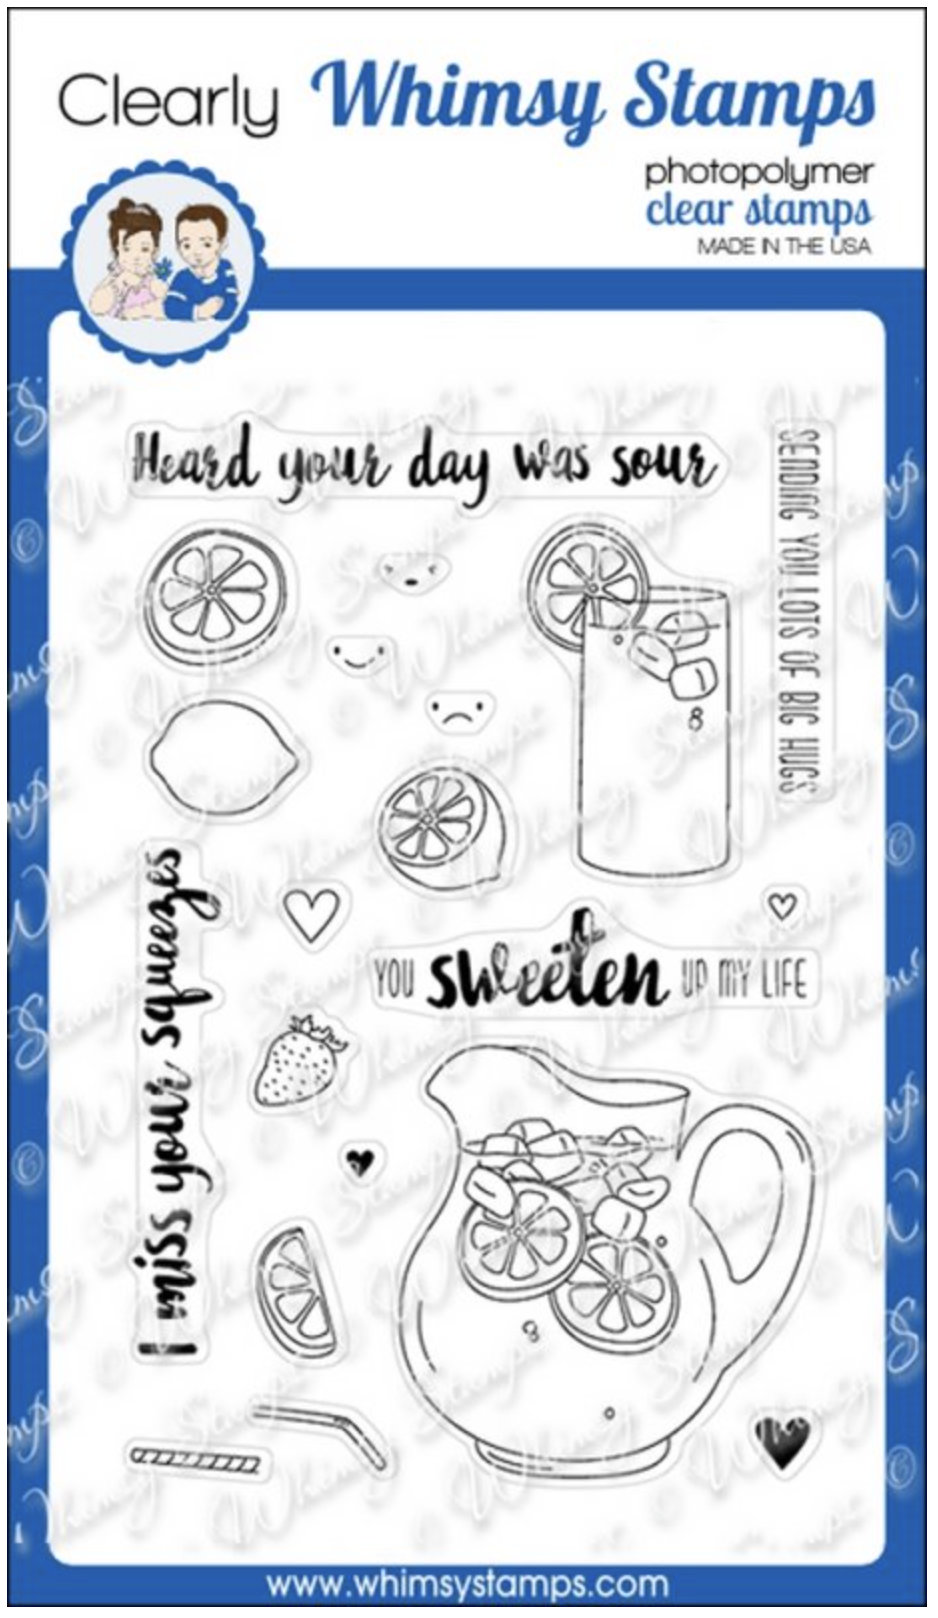 whimsystamps_5